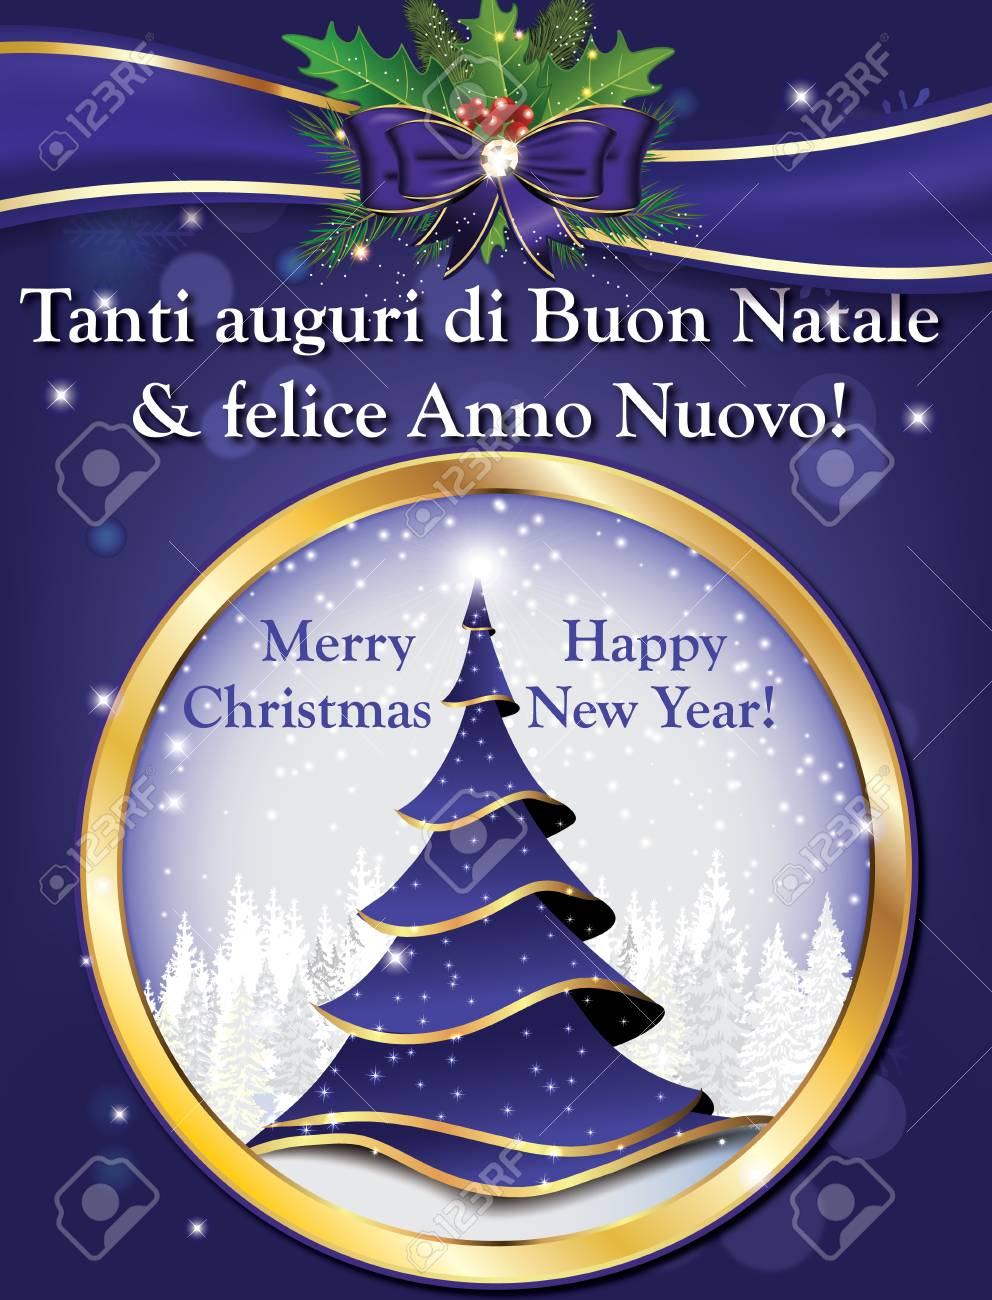 Italian Greeting Card For Winter Season 2017 Merry Christmas